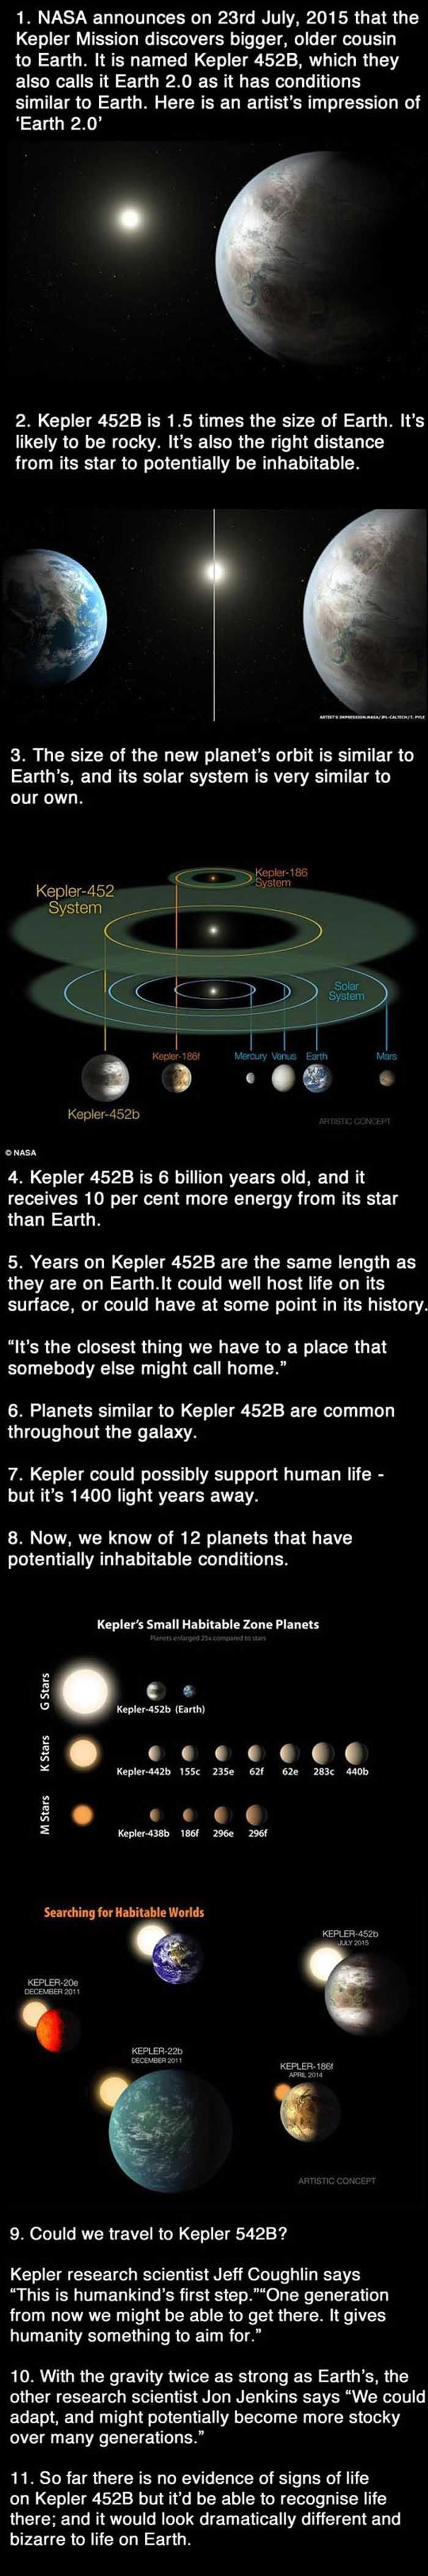 Everything You Want To Know About Kepler 452B – 5 Pics